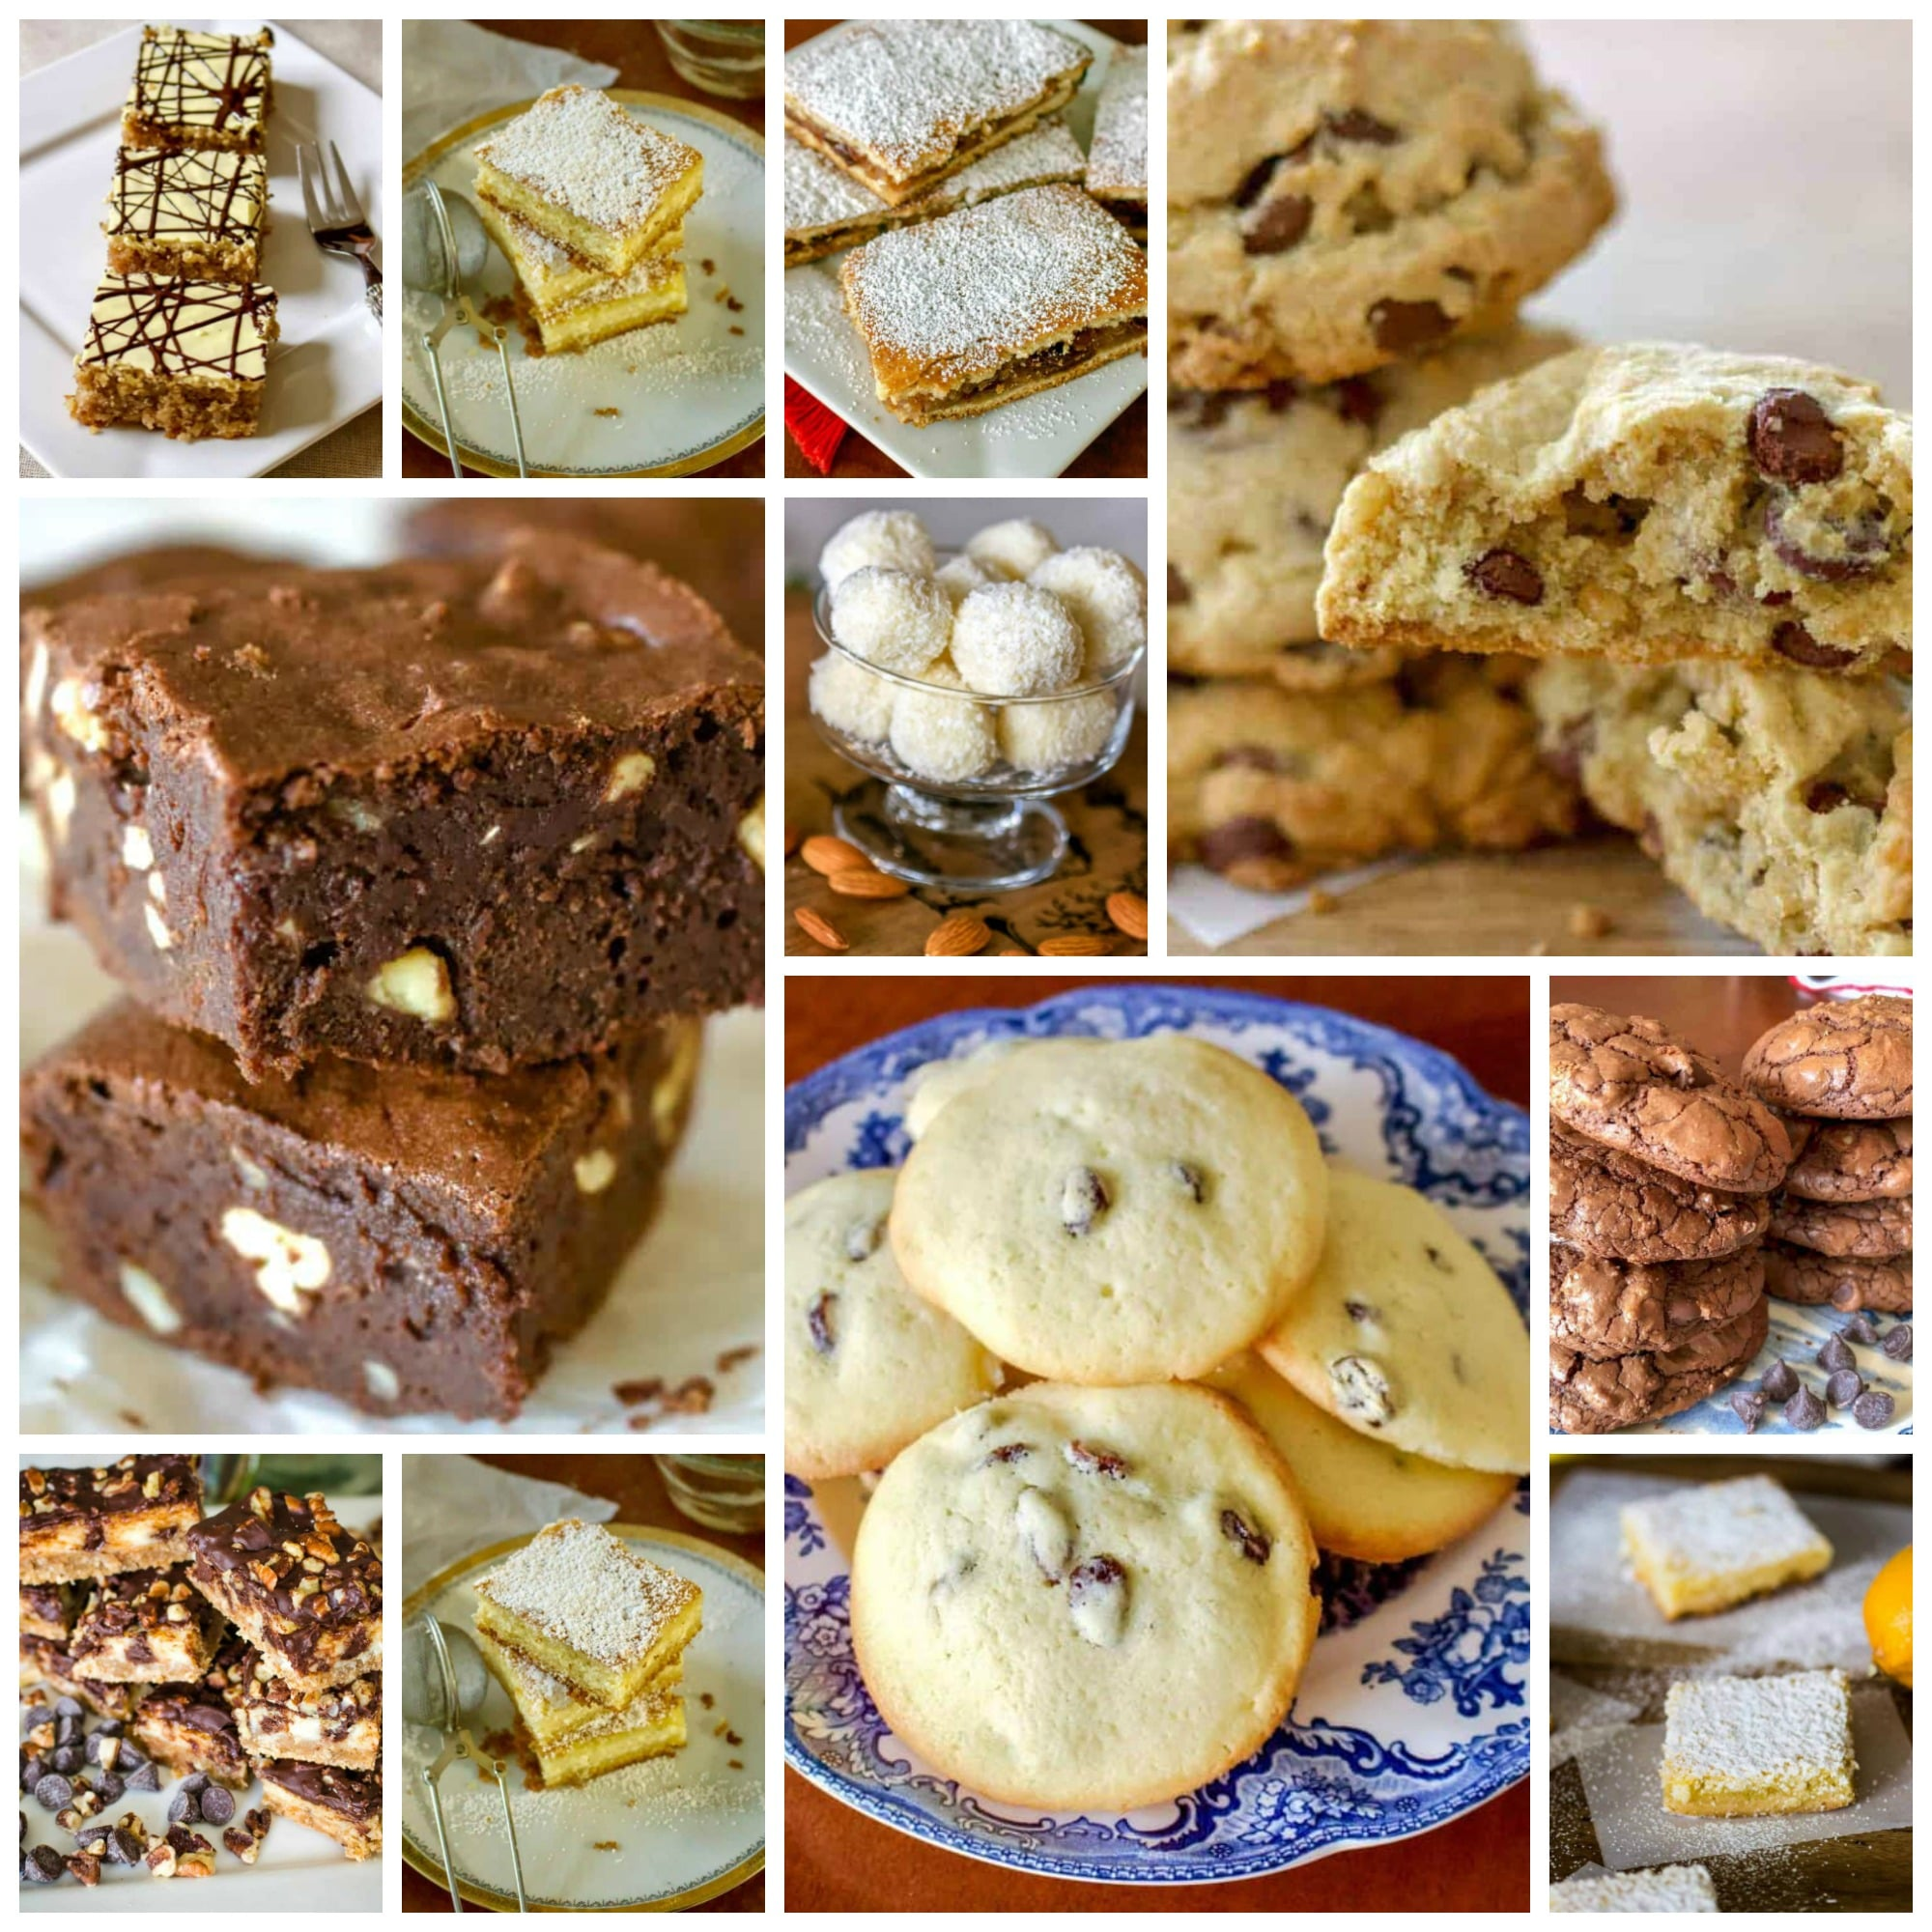 Super Bowl Dessert Idea Recipes- a collection of dessert recipes for the biggest sport event of the year.